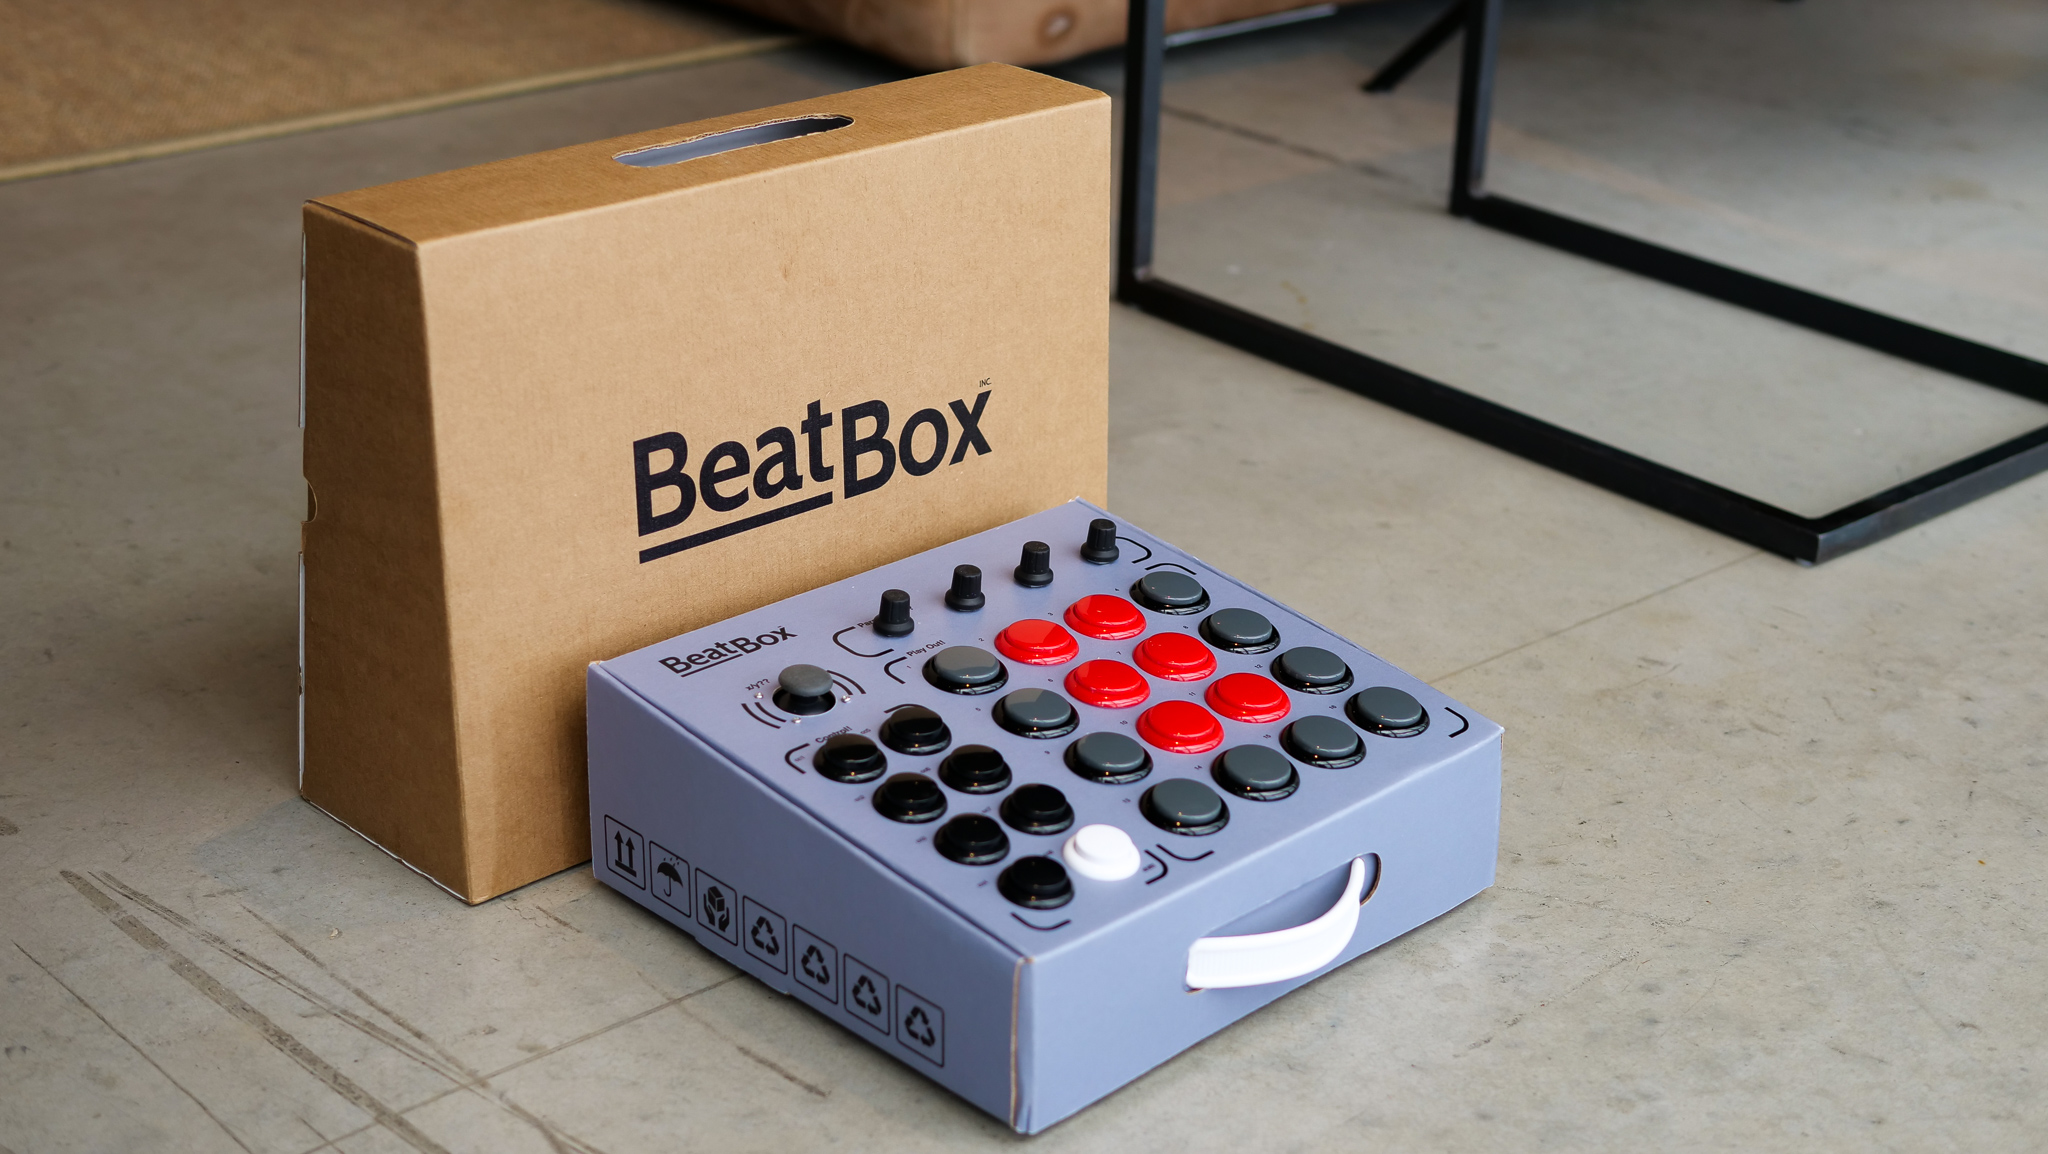 The Beatbox will come with a built-in handle and cardboard carrying case pictured above.